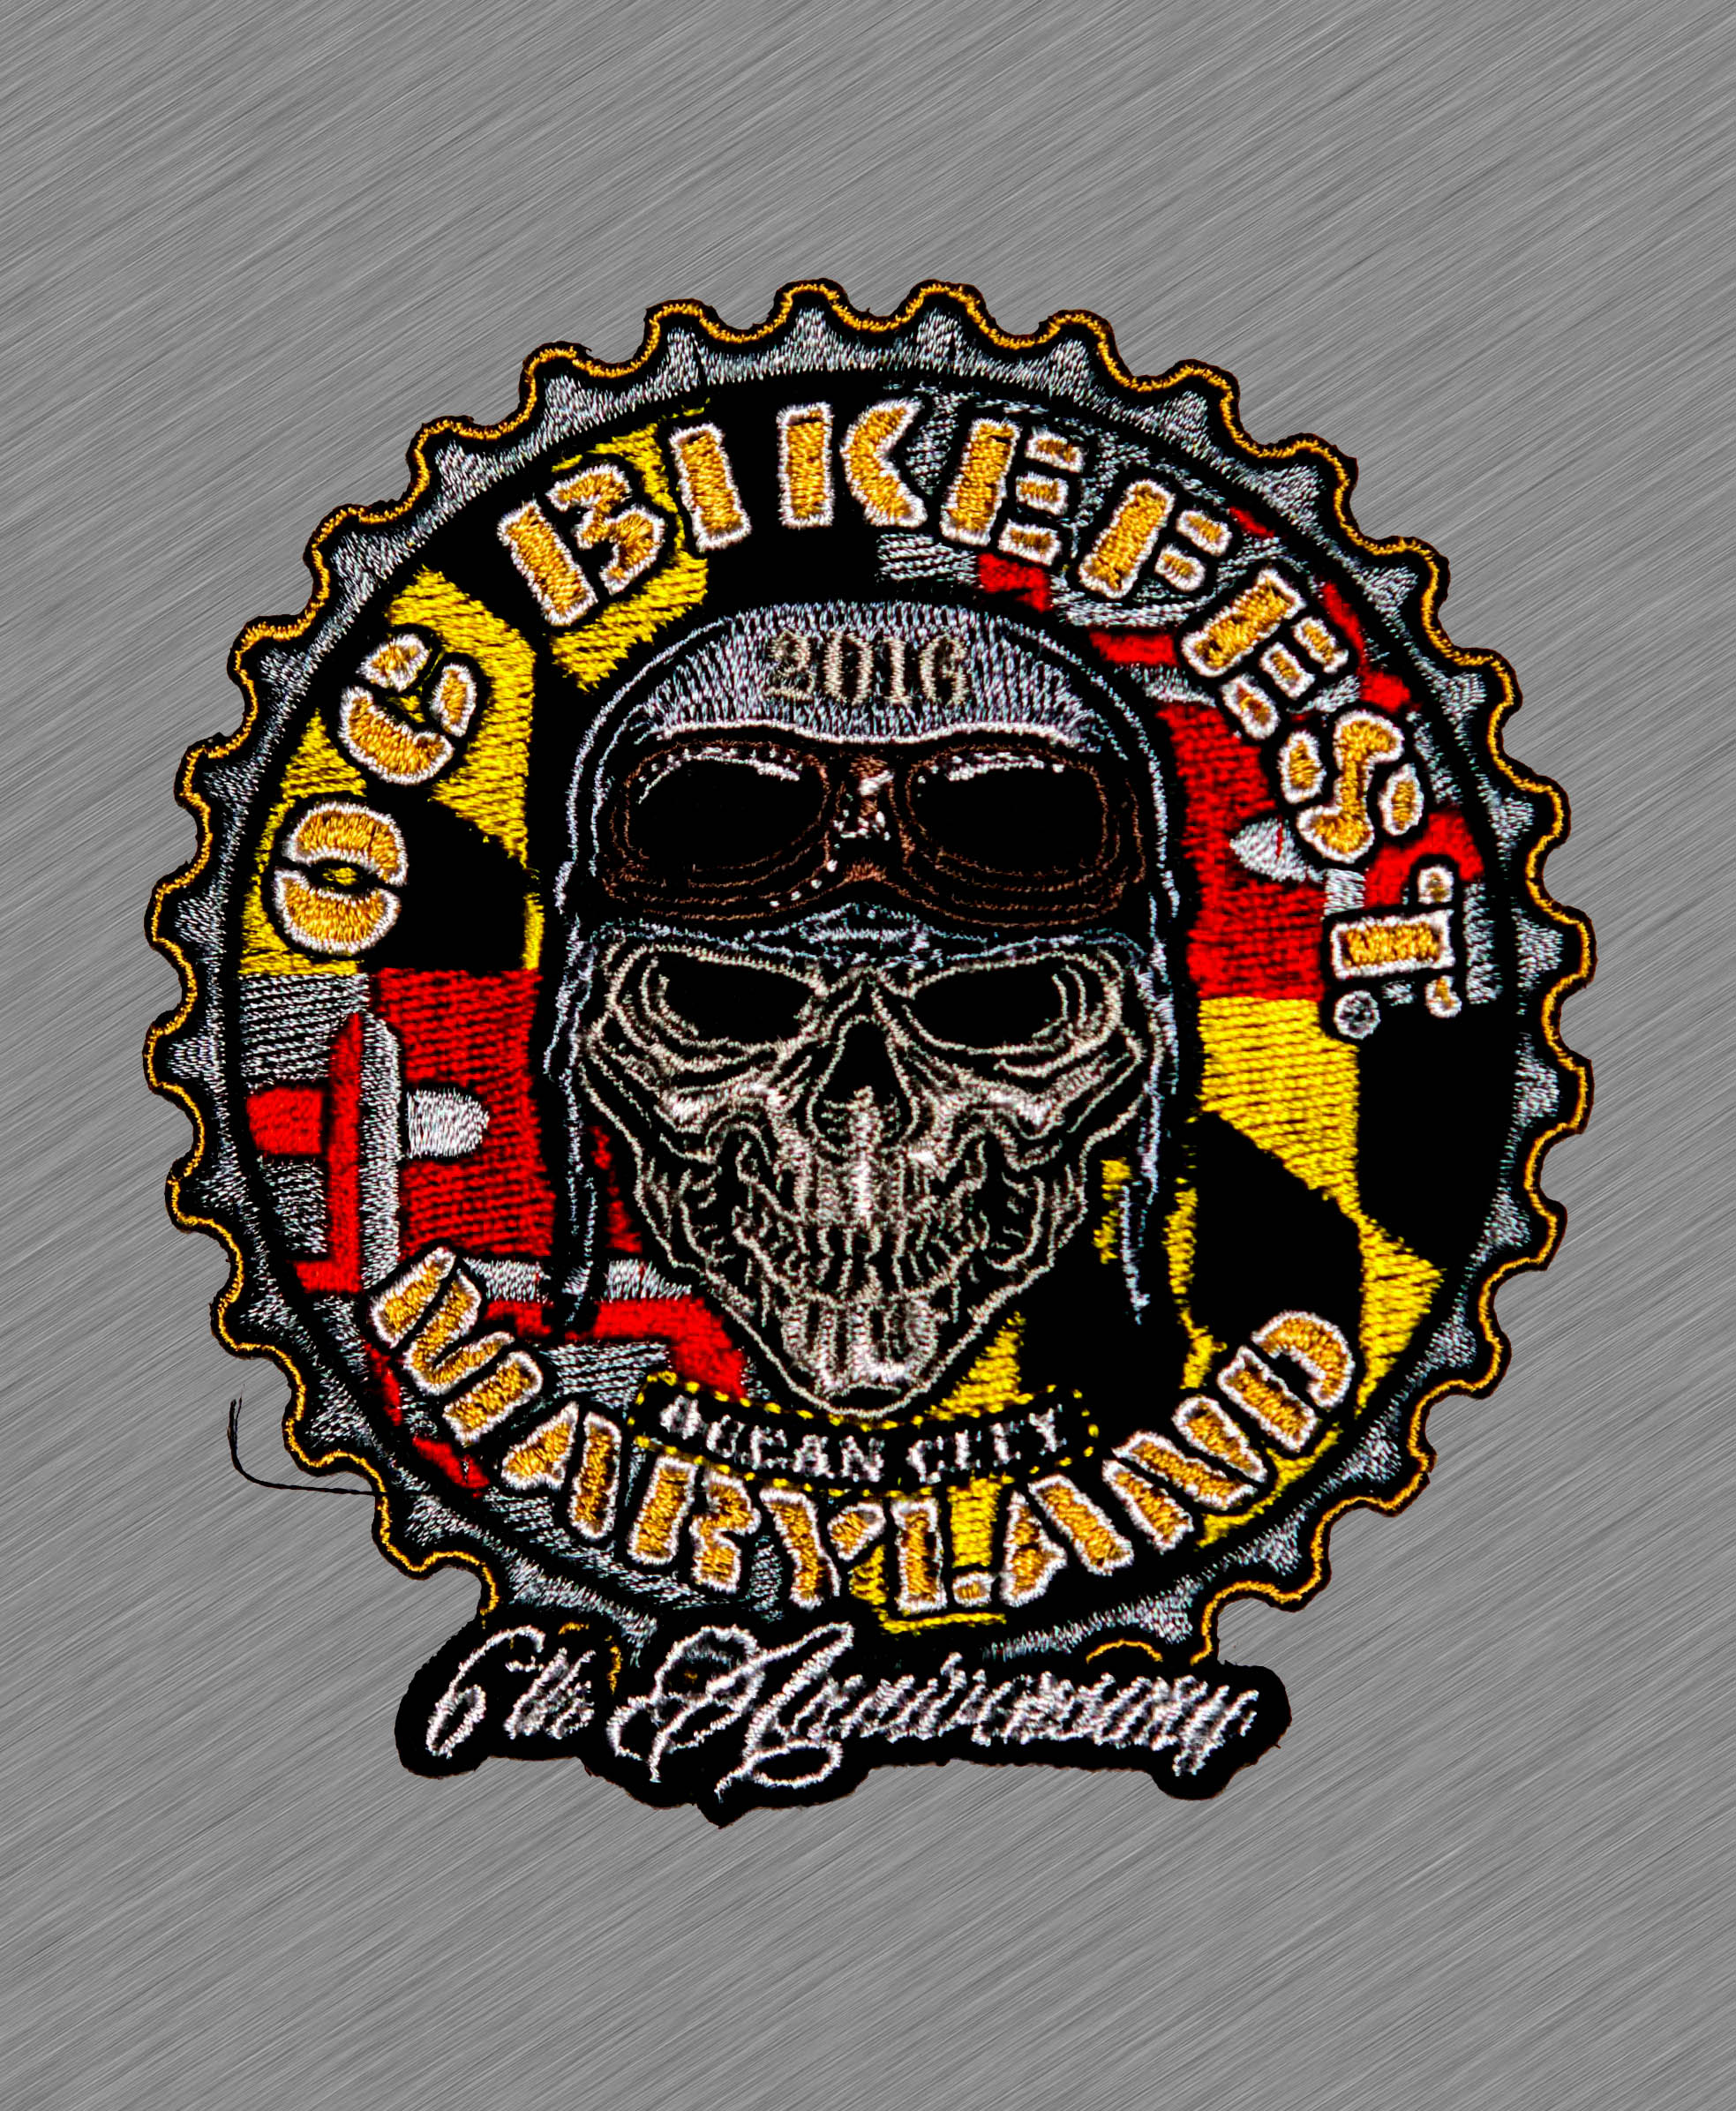 2016 OC BikeFest Maryland Flag Patch